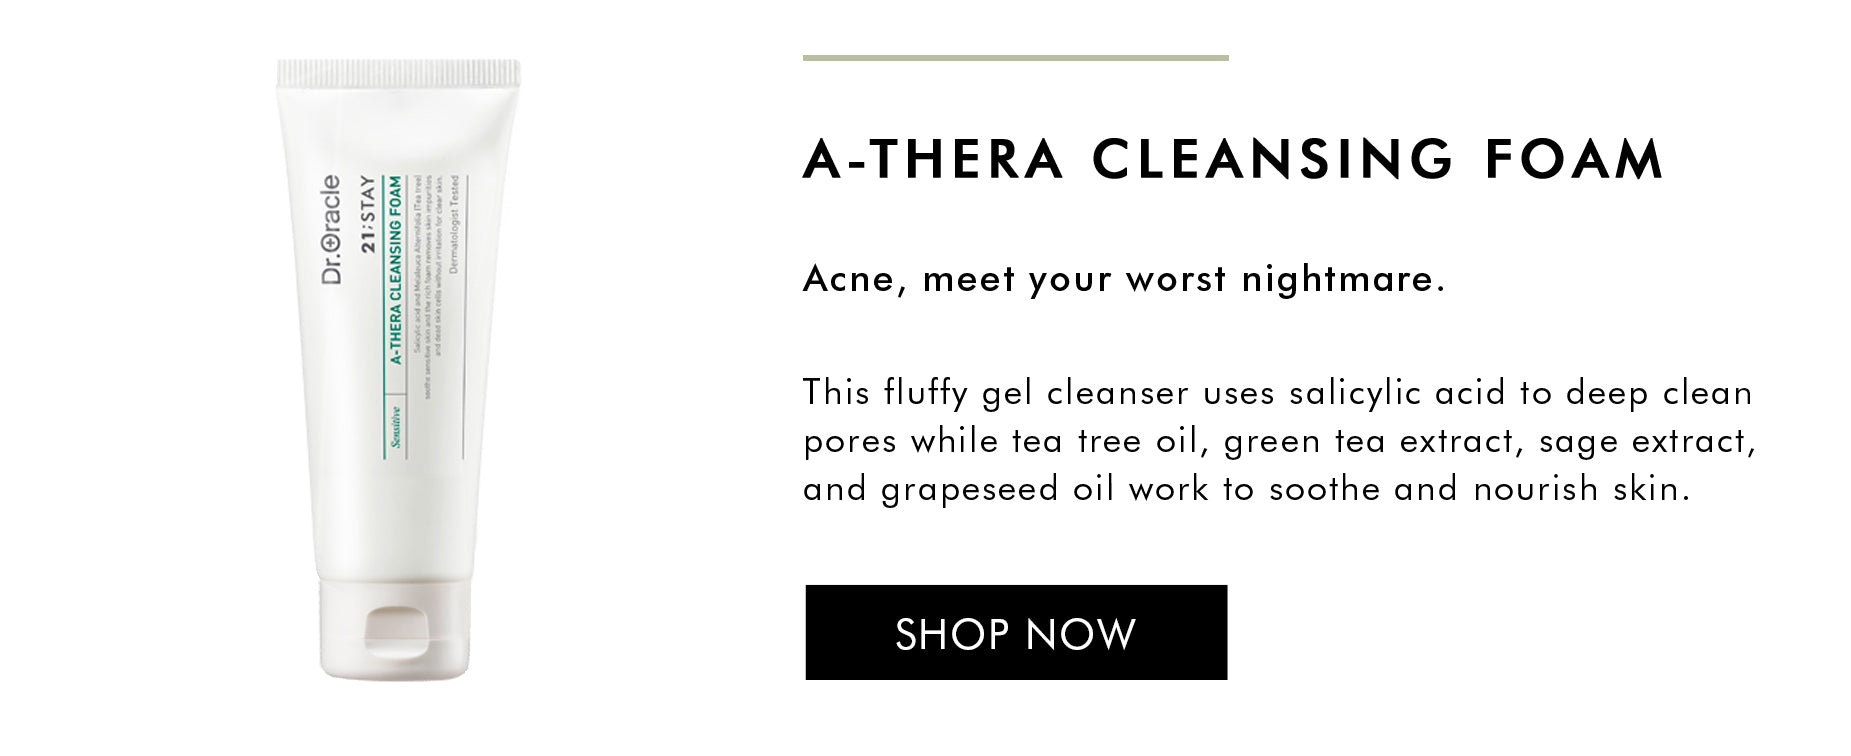 Shop A-there cleansing foam